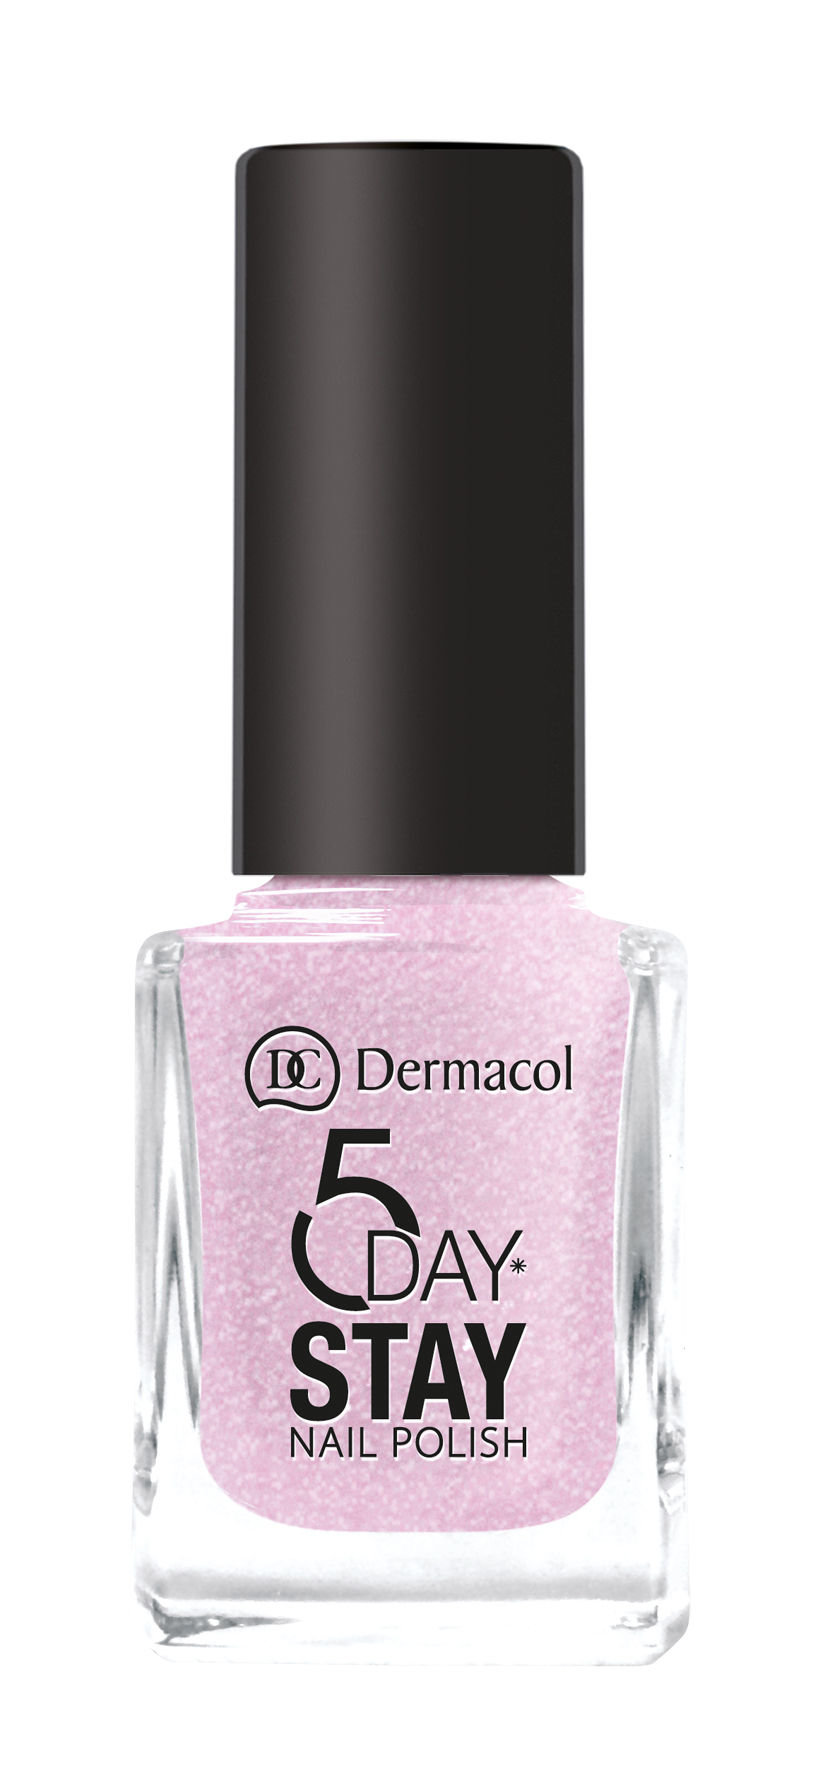 Dermacol 5 Day Stay Cosmetic 11ml 03 Secret Wish